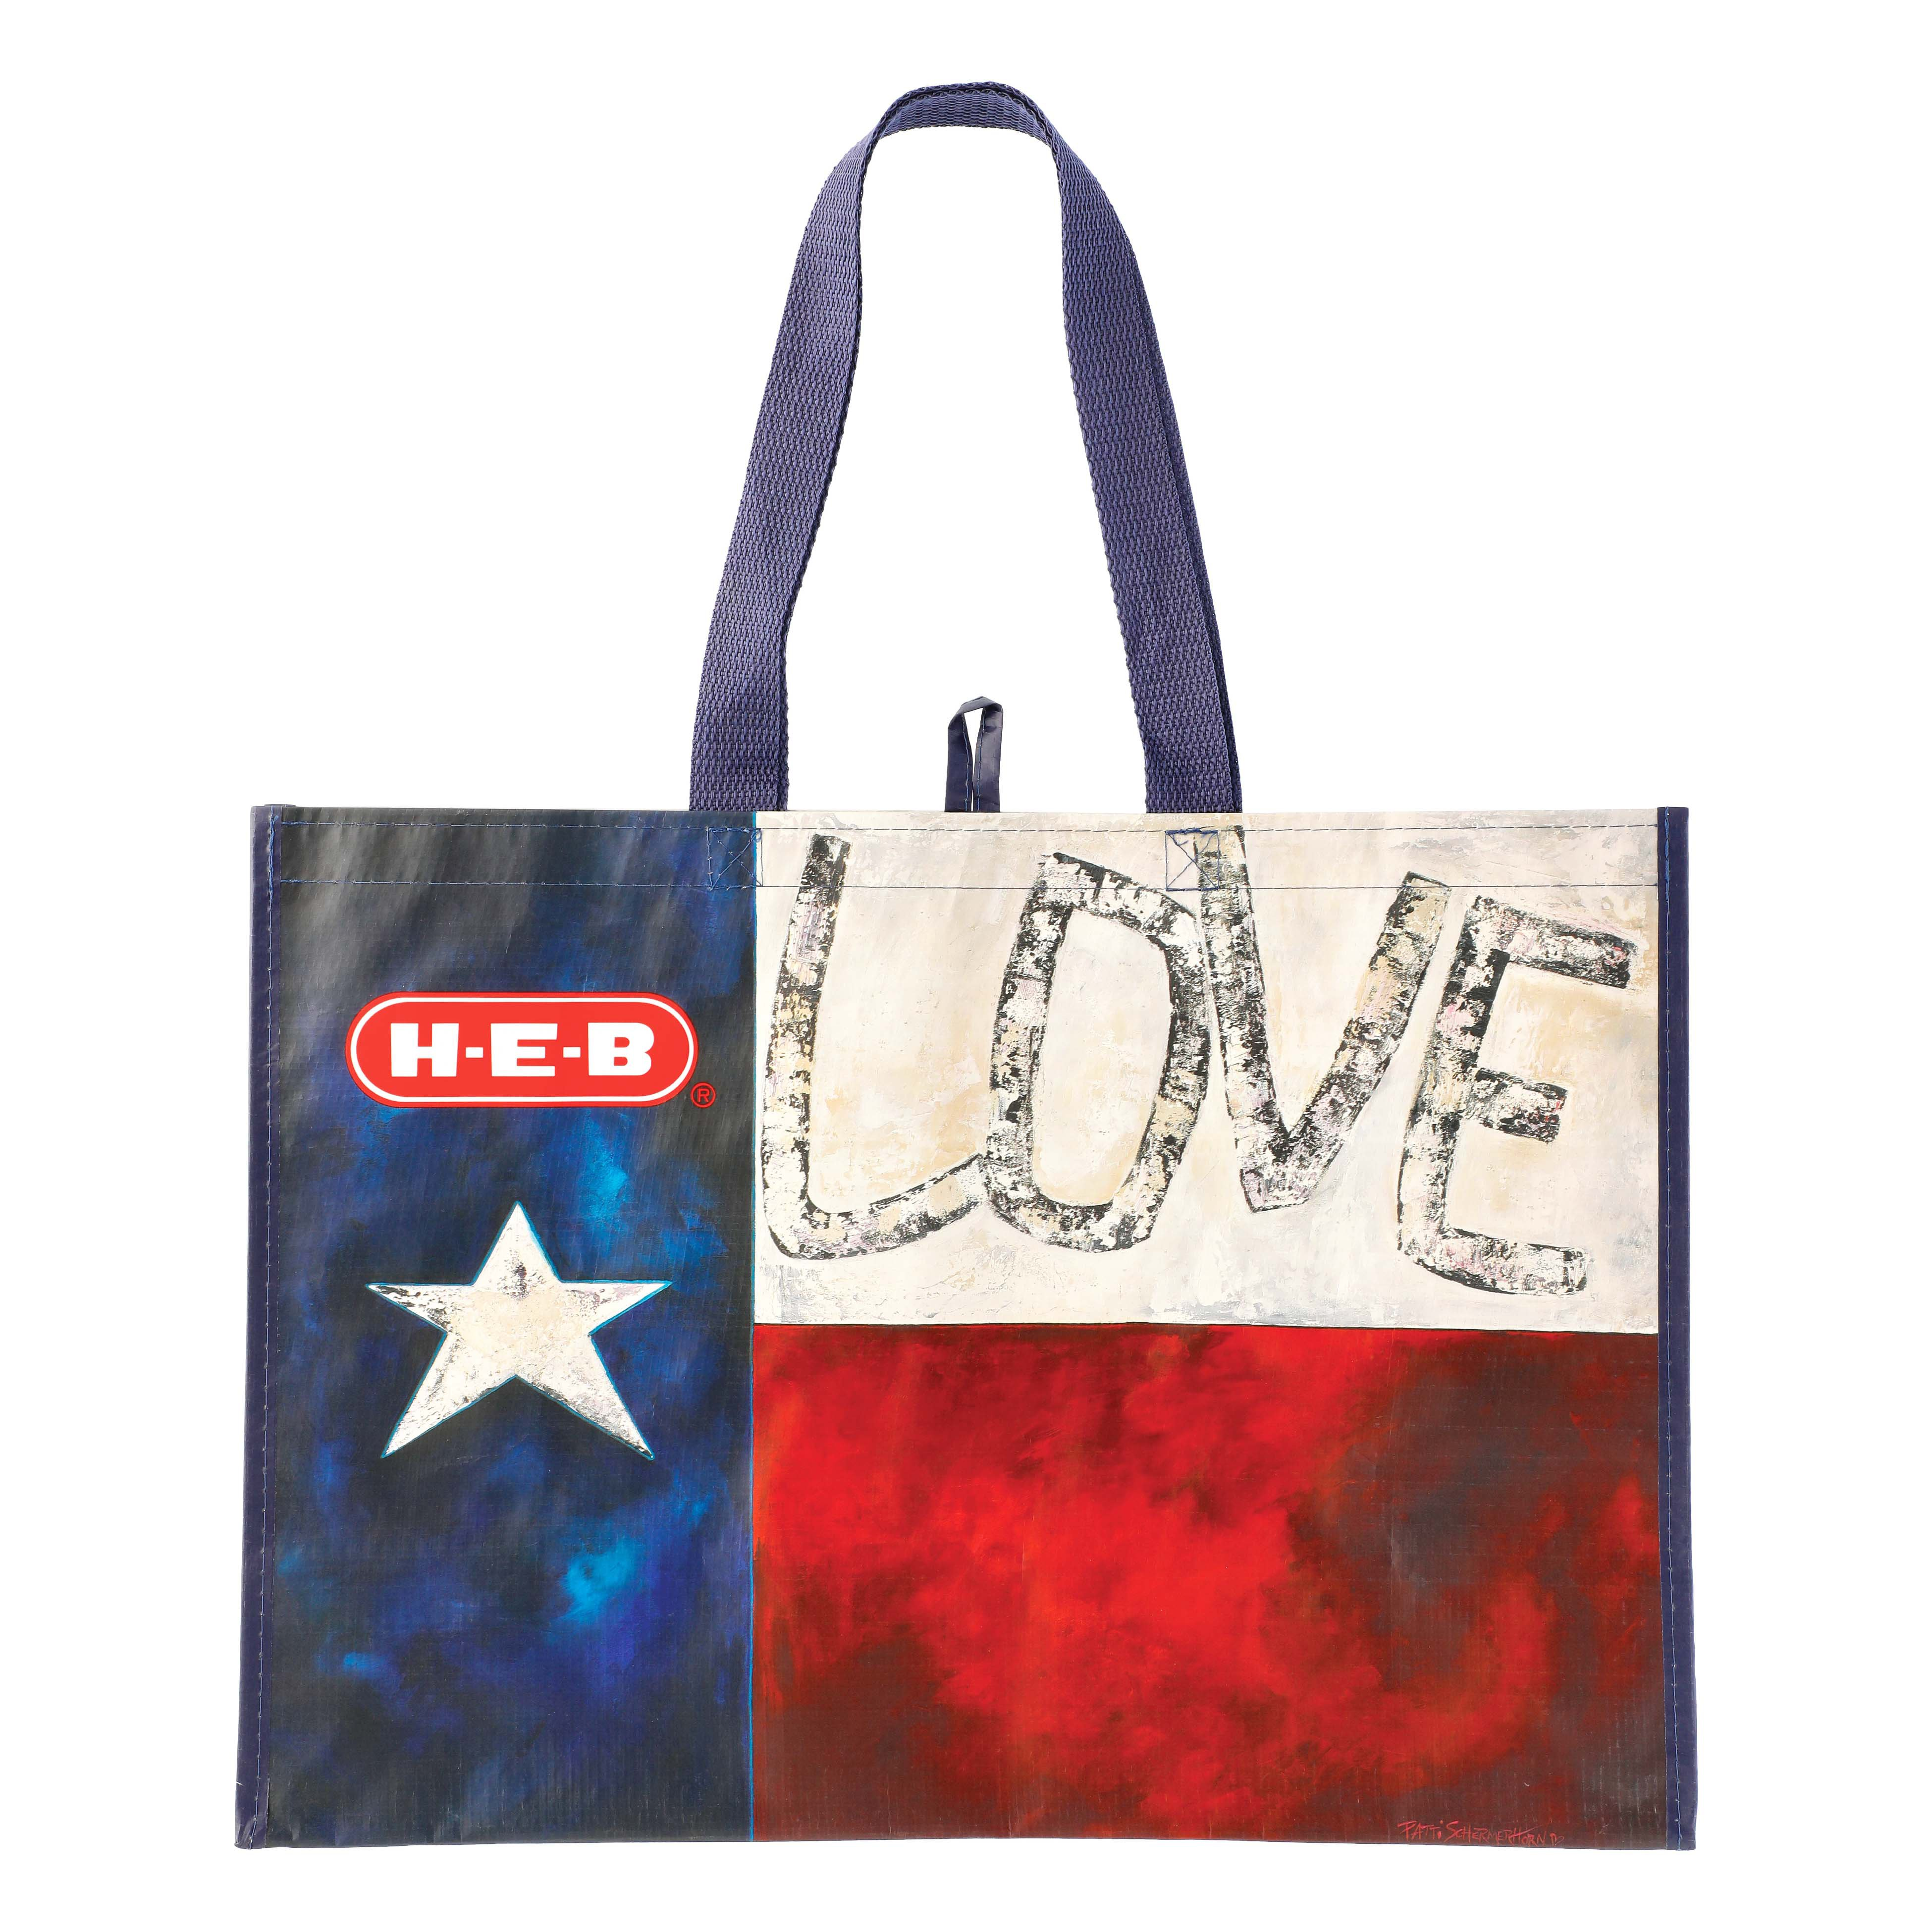 kitchen storage and organization shop heb everyday low prices online h e b texas flag reusable shopping bag